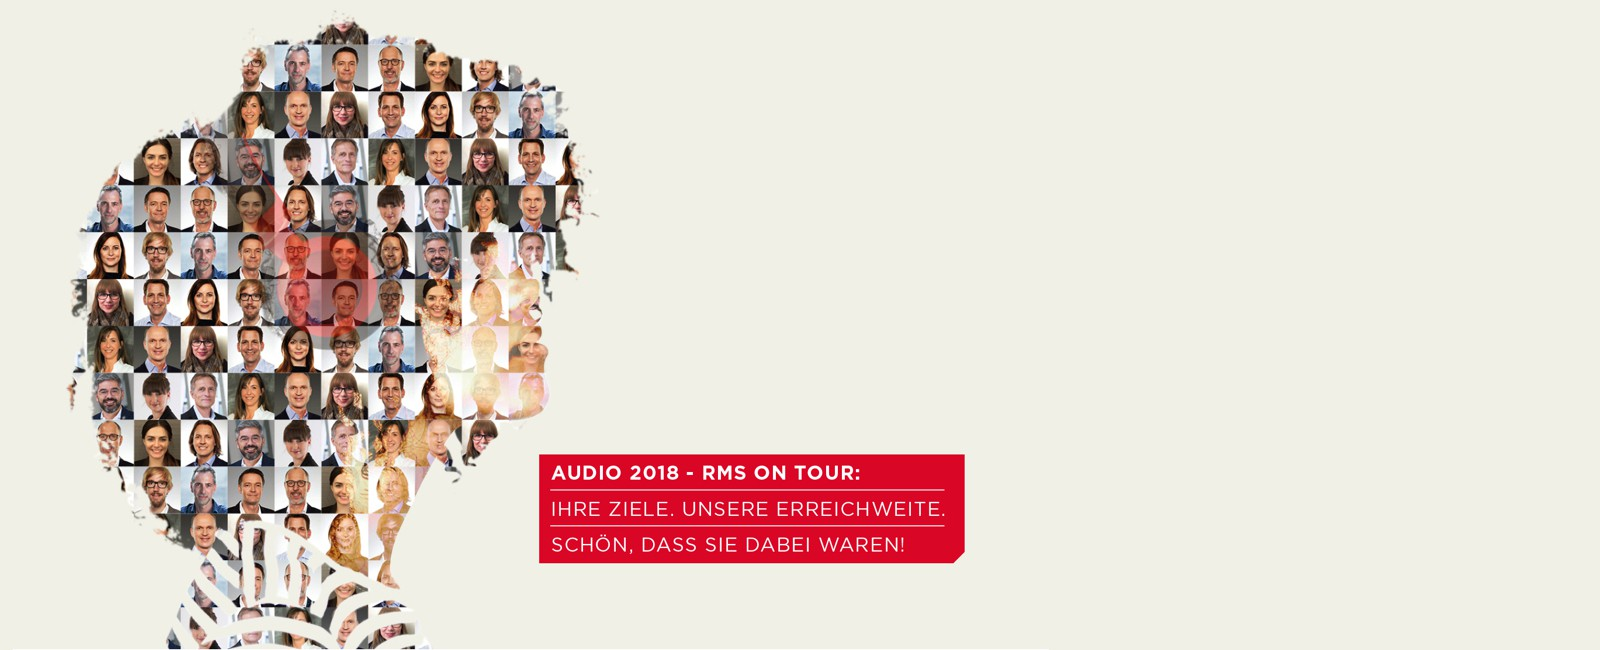 Die Neuen - AUDIO 2018 - RMS ON TOUR